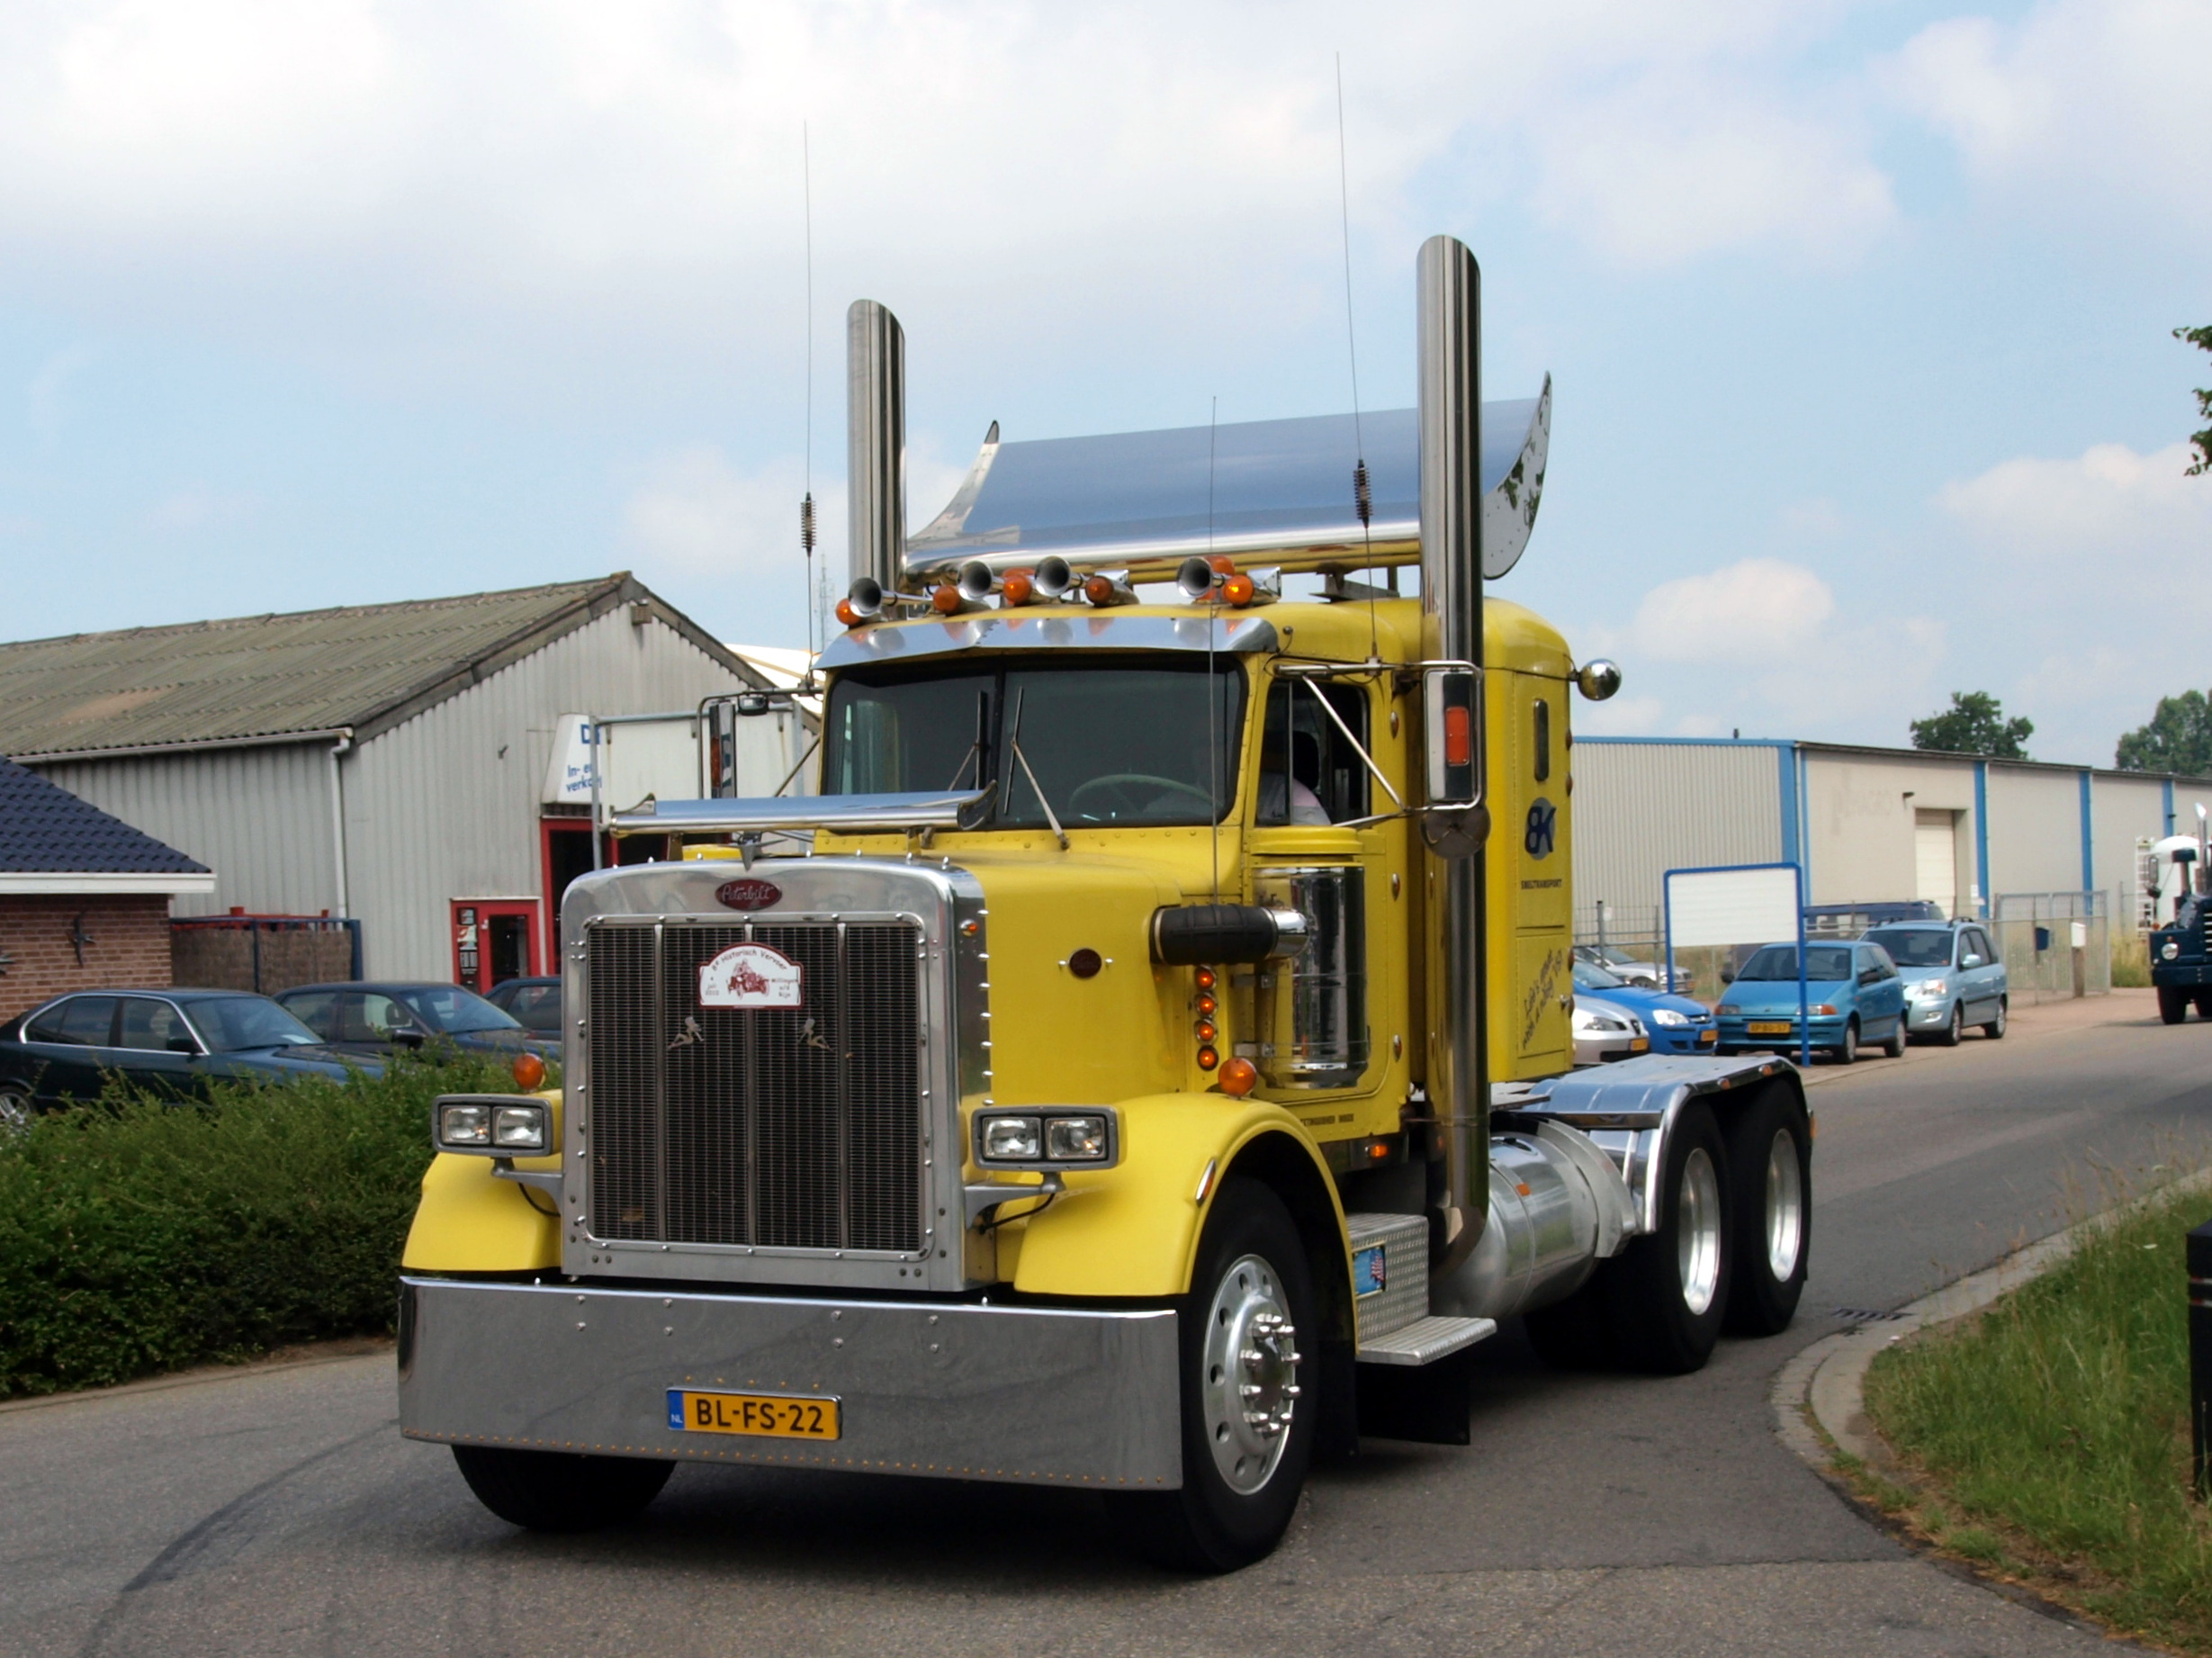 1973 peterbilt 359 check out this well restored peterbilt 359 truck